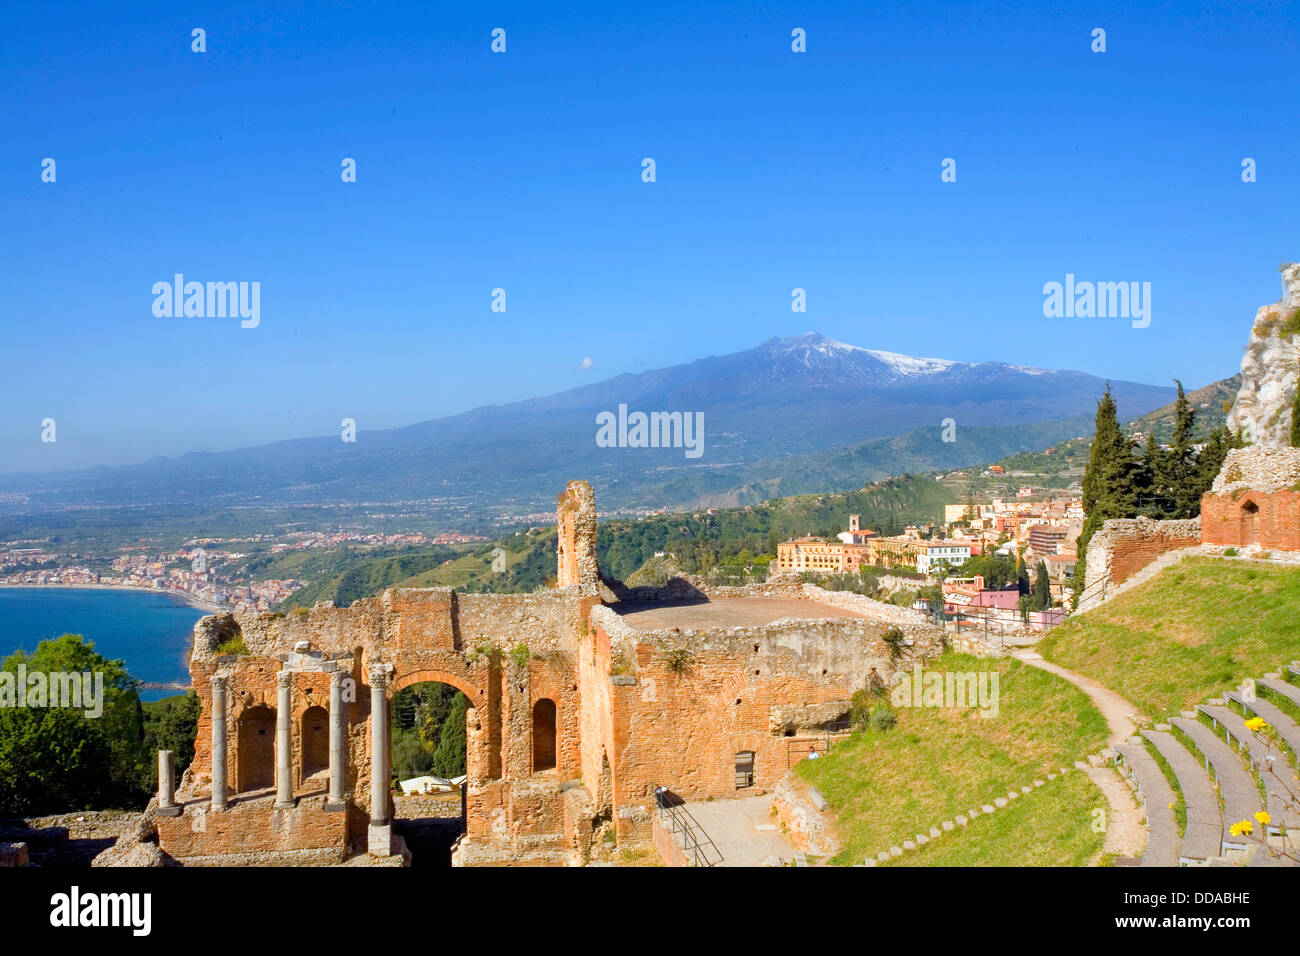 View of the Taormina's Ancient Greek Theater and Mount Etna in Taormina Sicily Italy - Stock Image